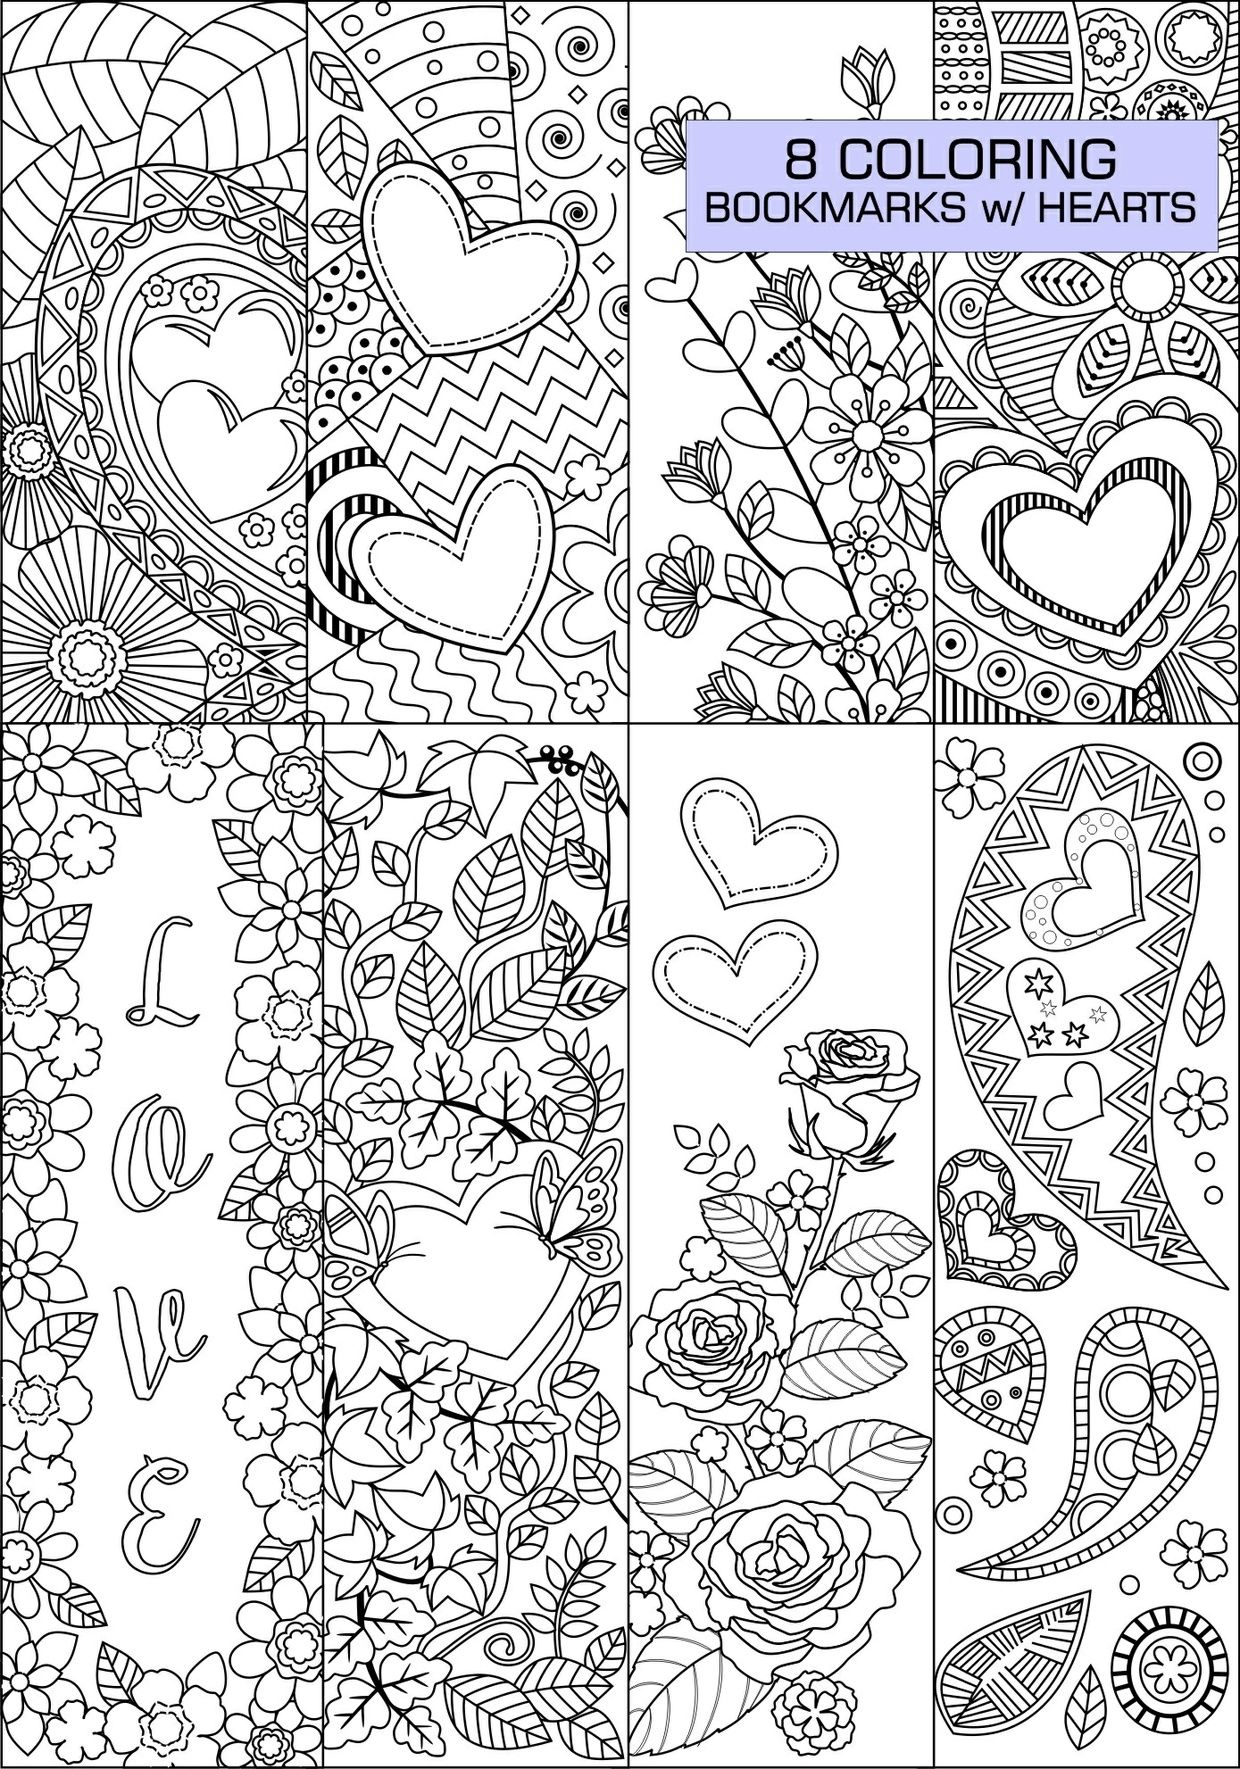 8 Coloring Bookmarks with hearts #heart #coloring #bookmarks ...